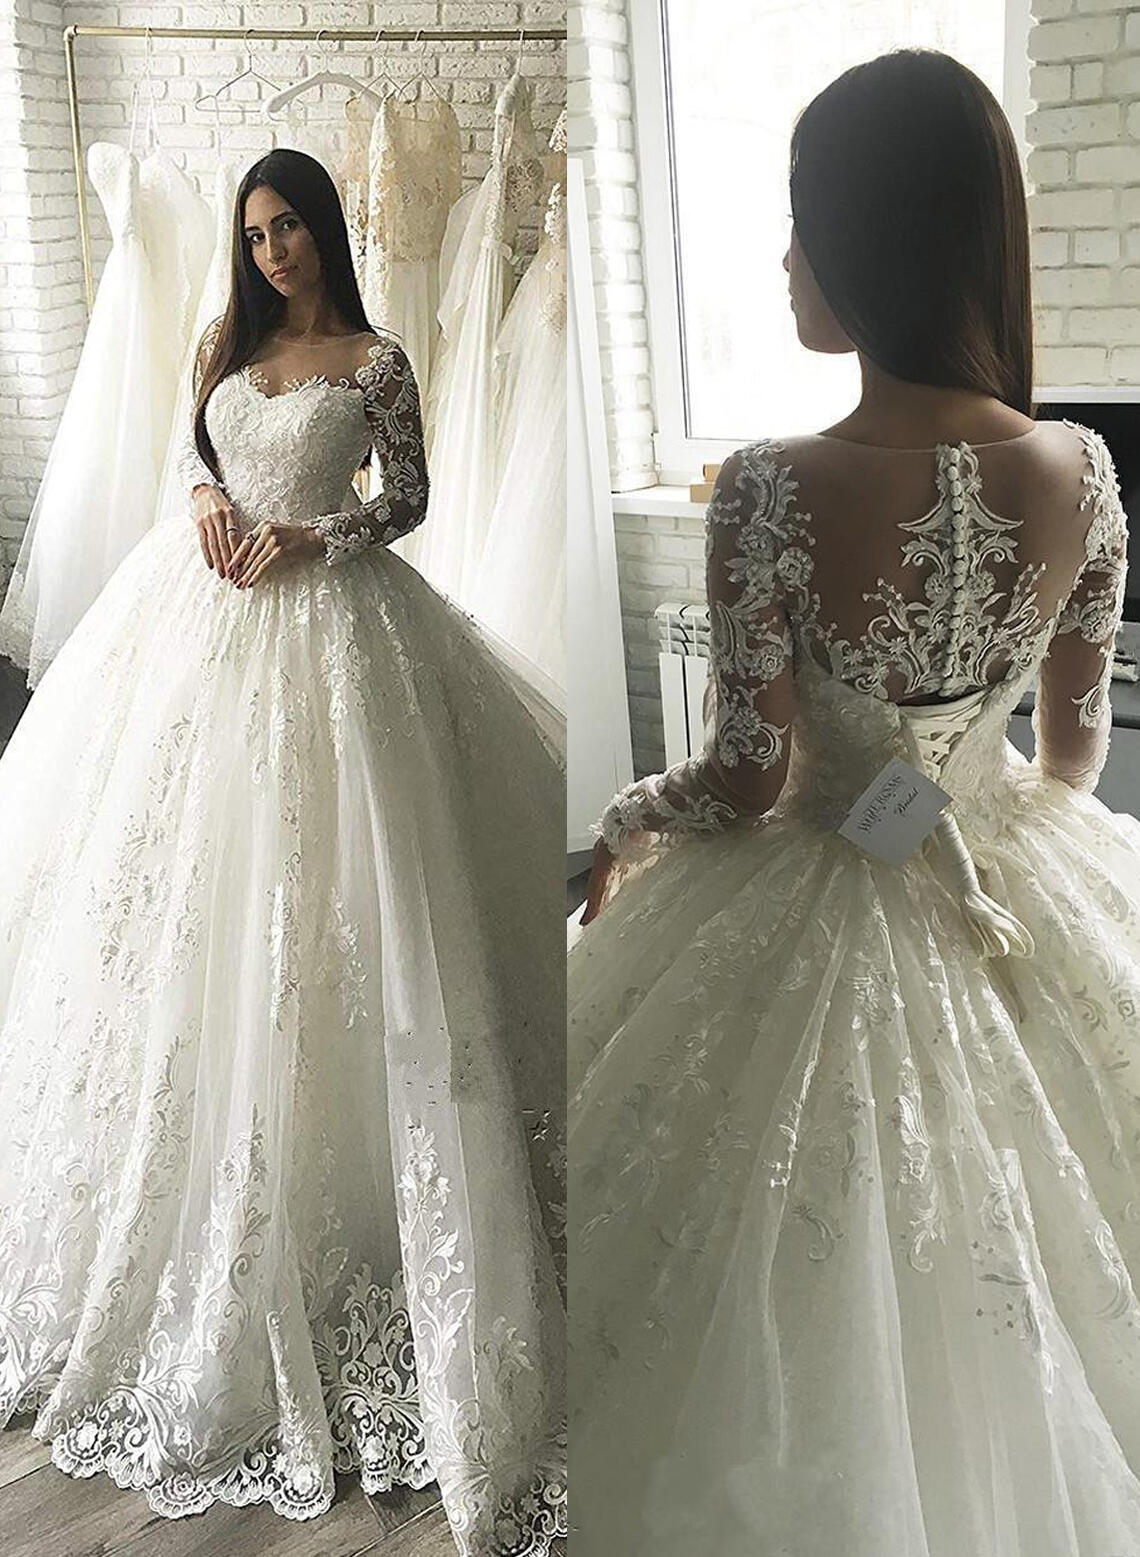 e965f9d846f Ball-Gown Appliques Tulle - Luxurious Wedding Dresses (002213511). Loading  zoom